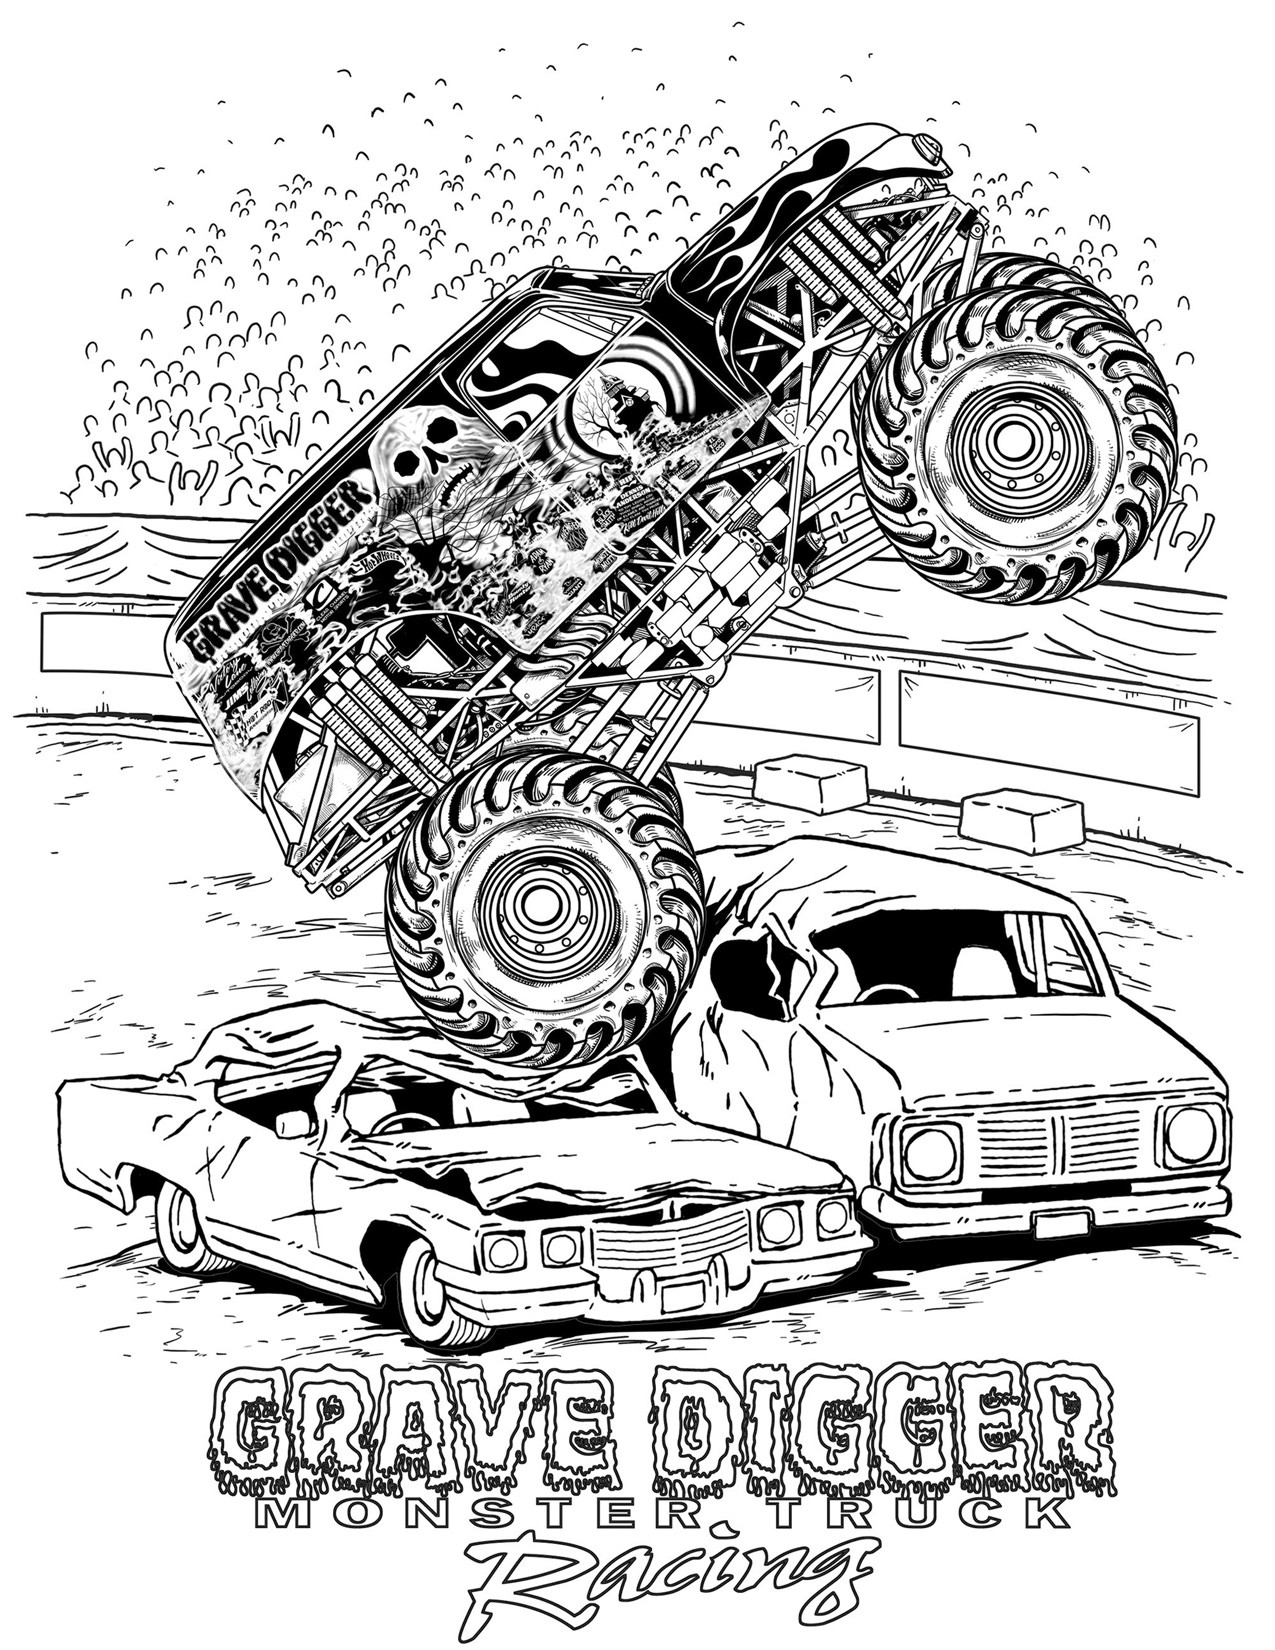 Drawn truck awesome truck Trucks Pages how  to